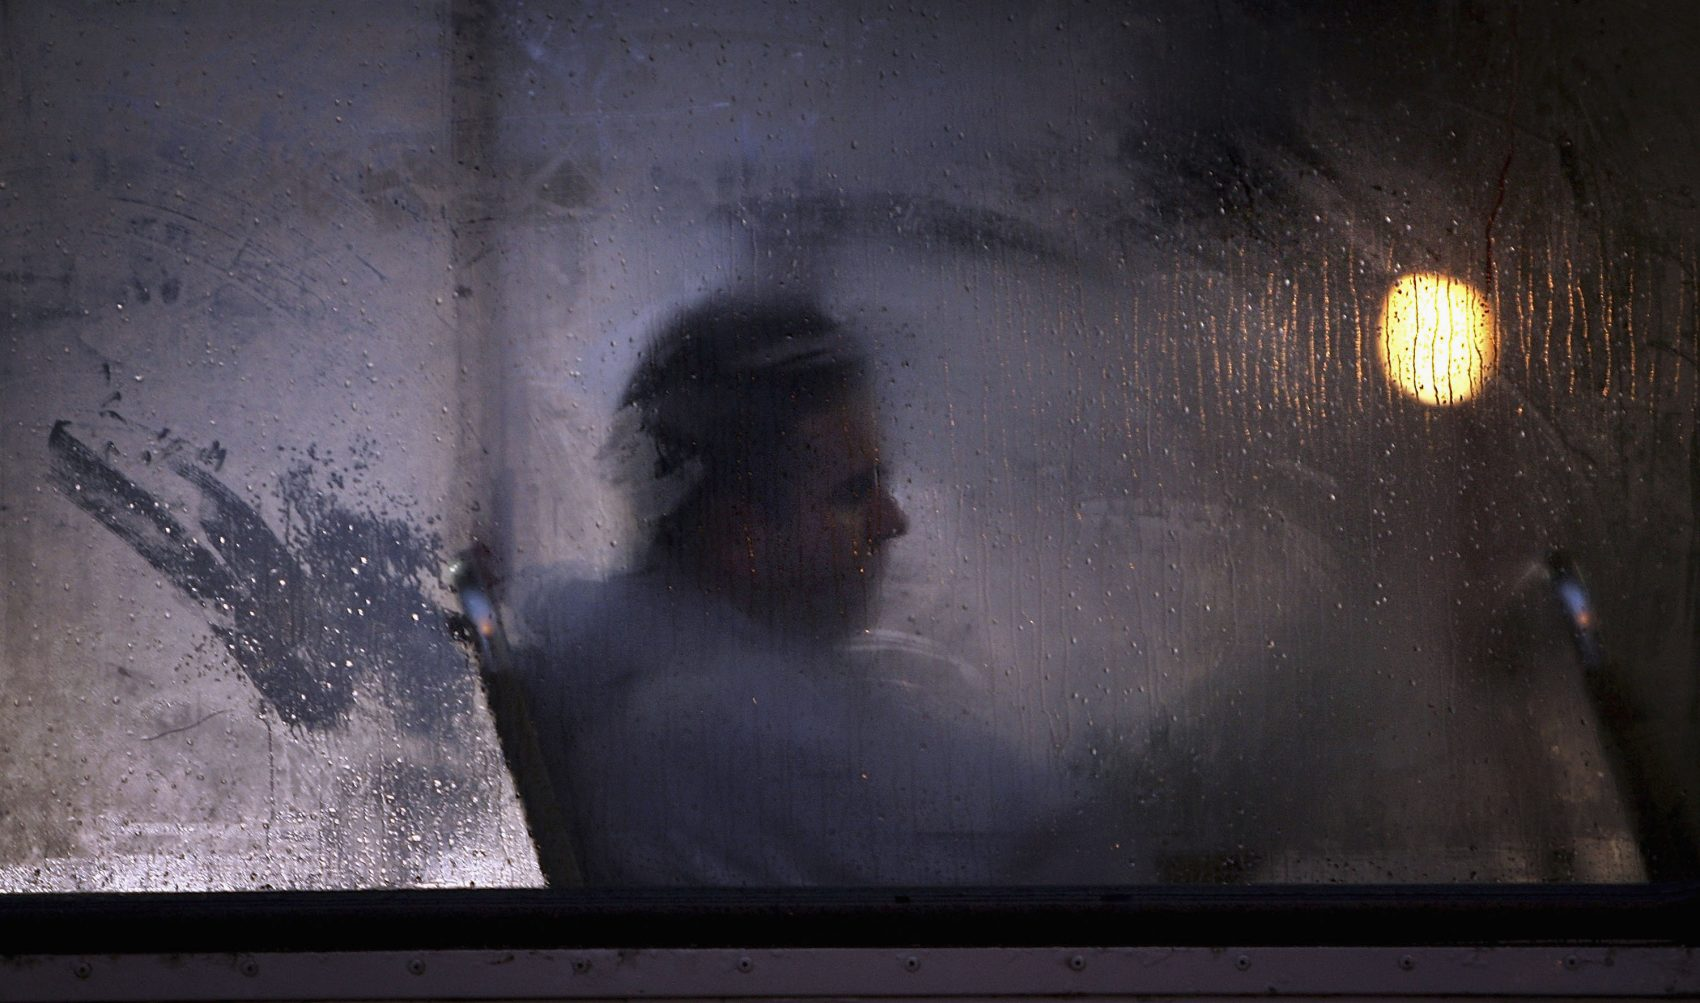 A man makes his way home from work on a bus as darkness falls in Glasgow, Scotland. (Christopher Furlong/Getty Images)